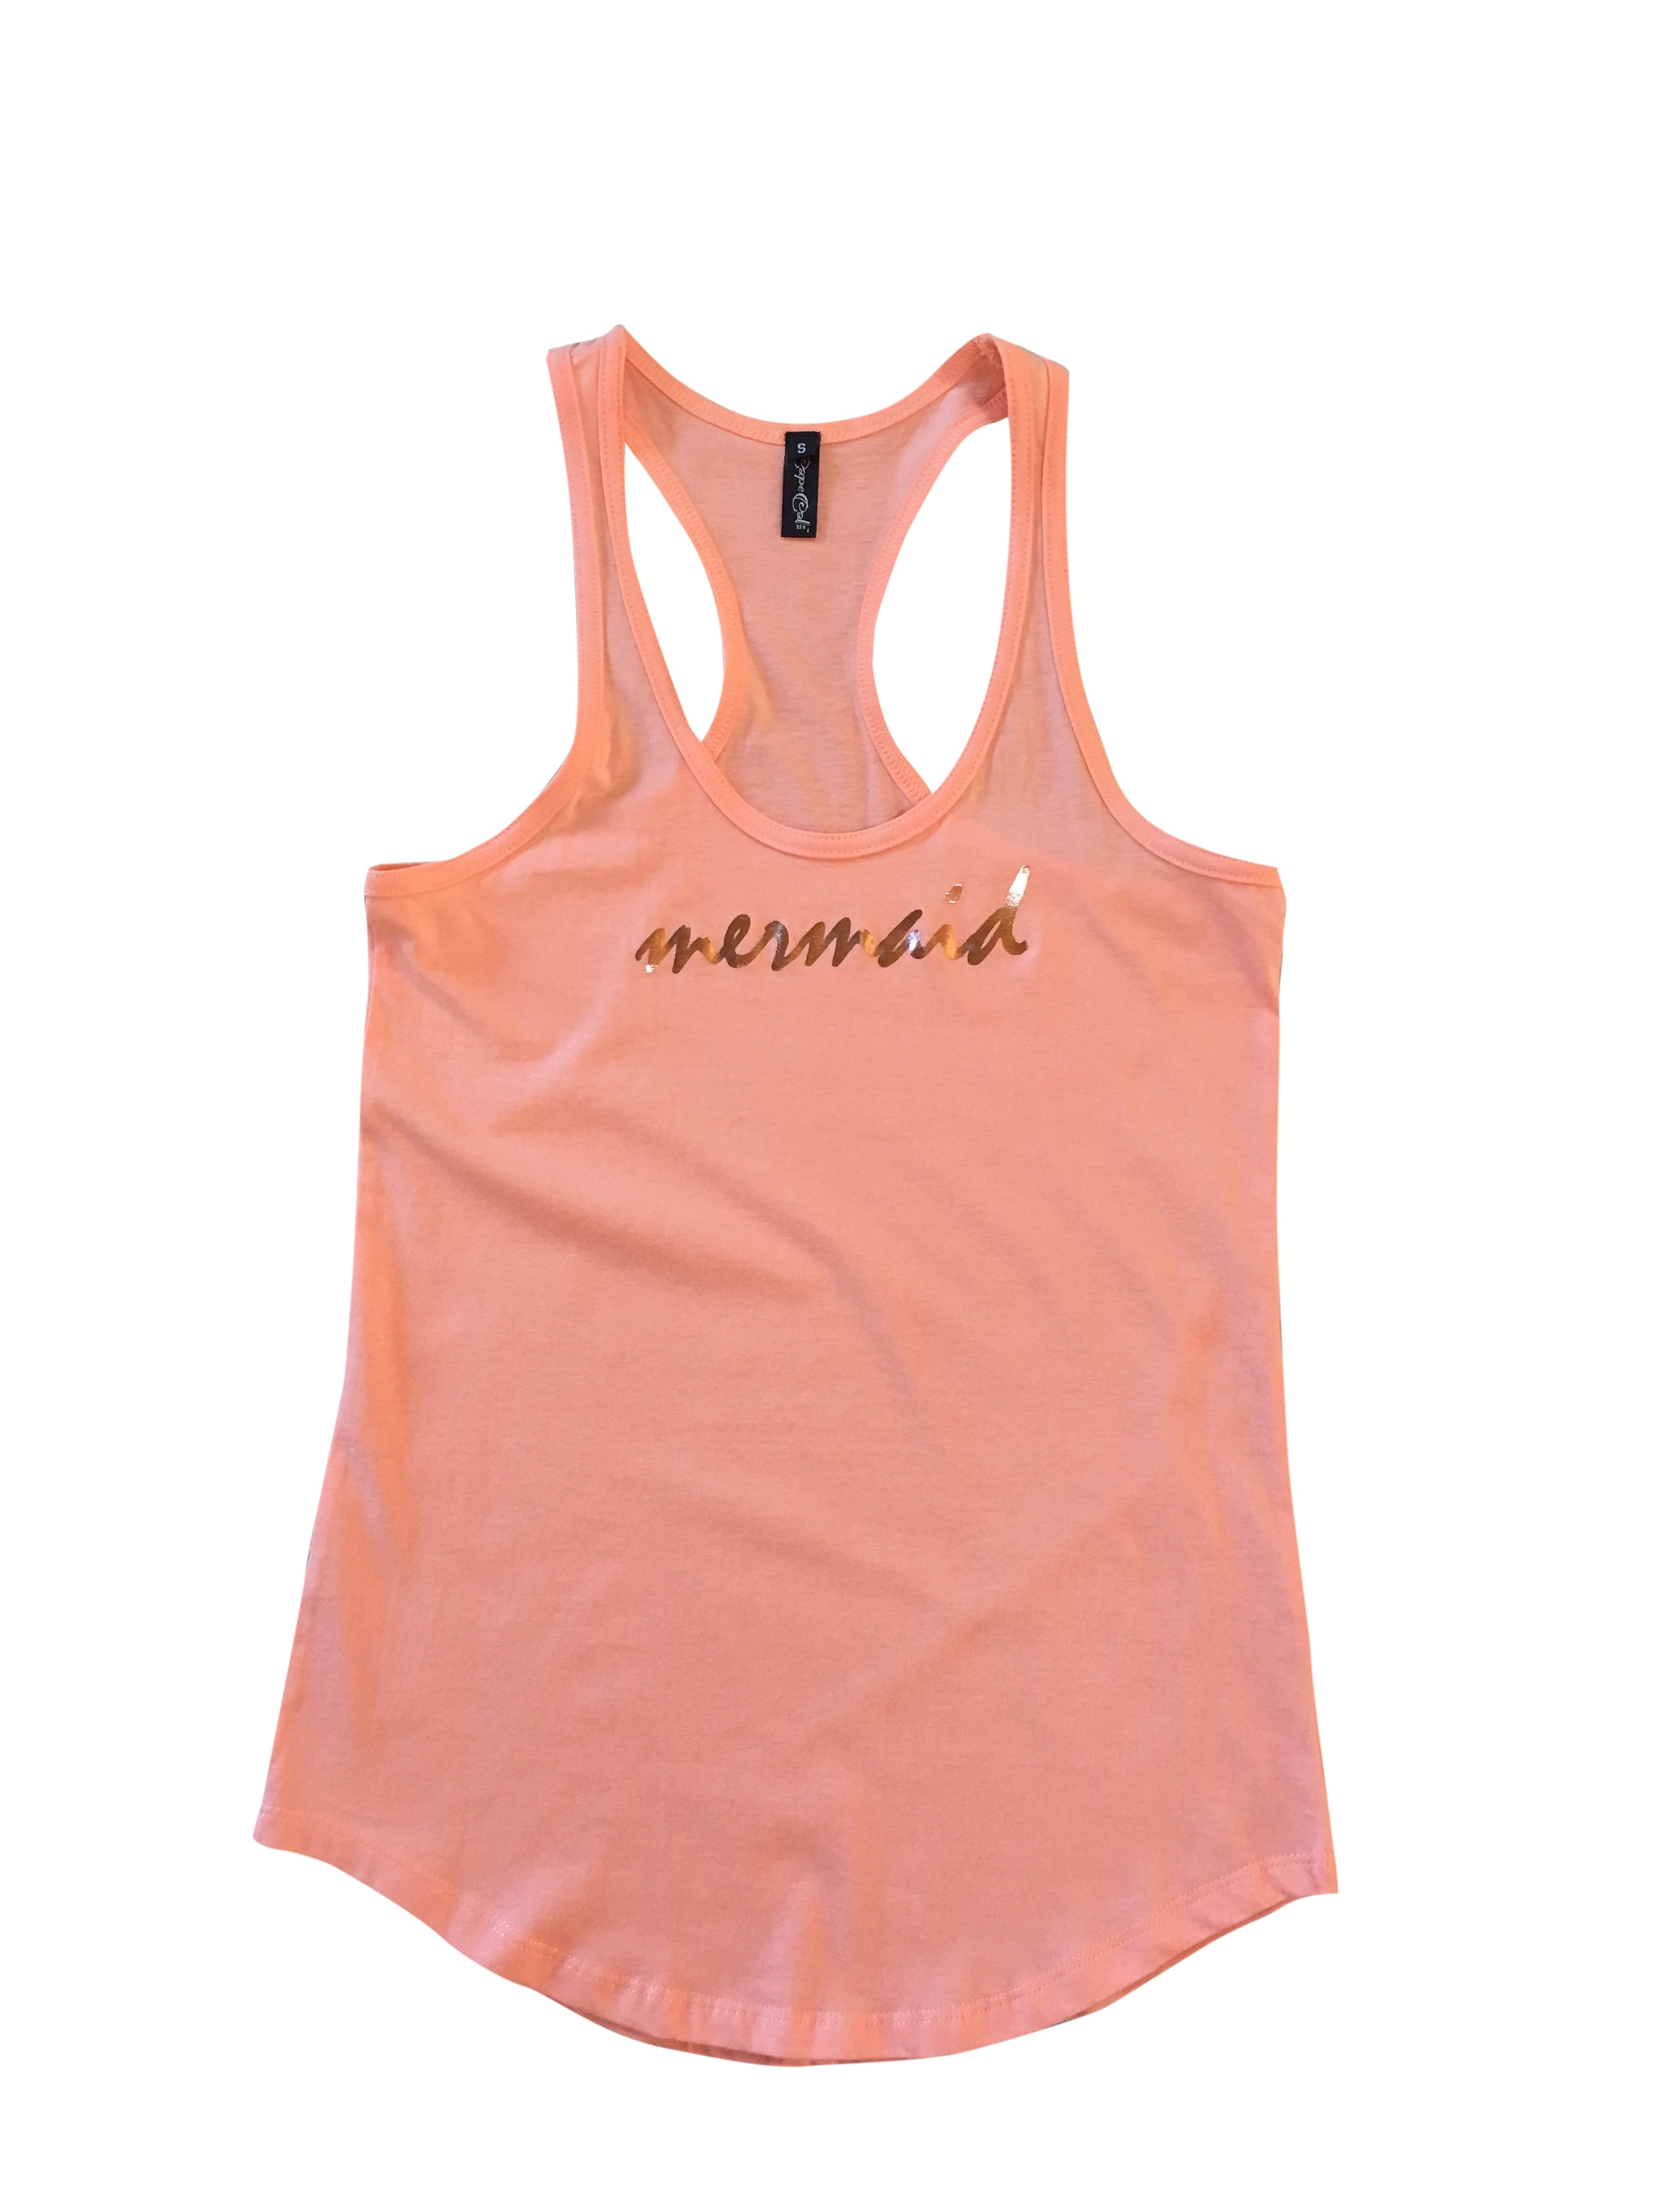 Mermaid Racerback Tank - Cape Cali